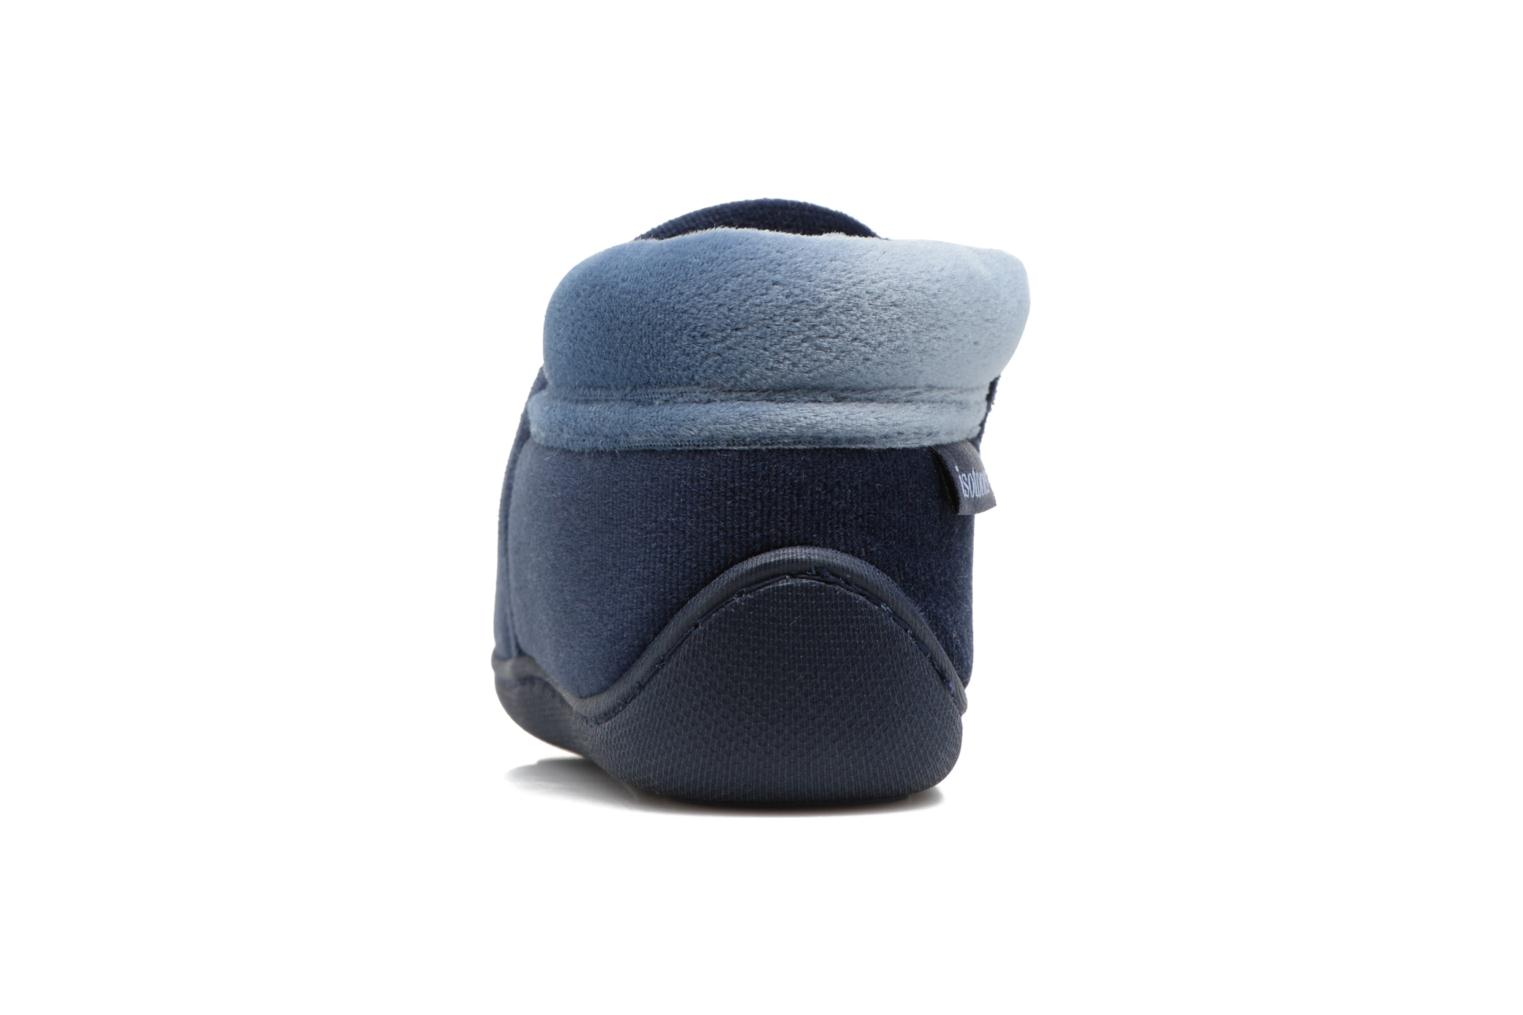 Botillon Zip Polyvelours Bleu